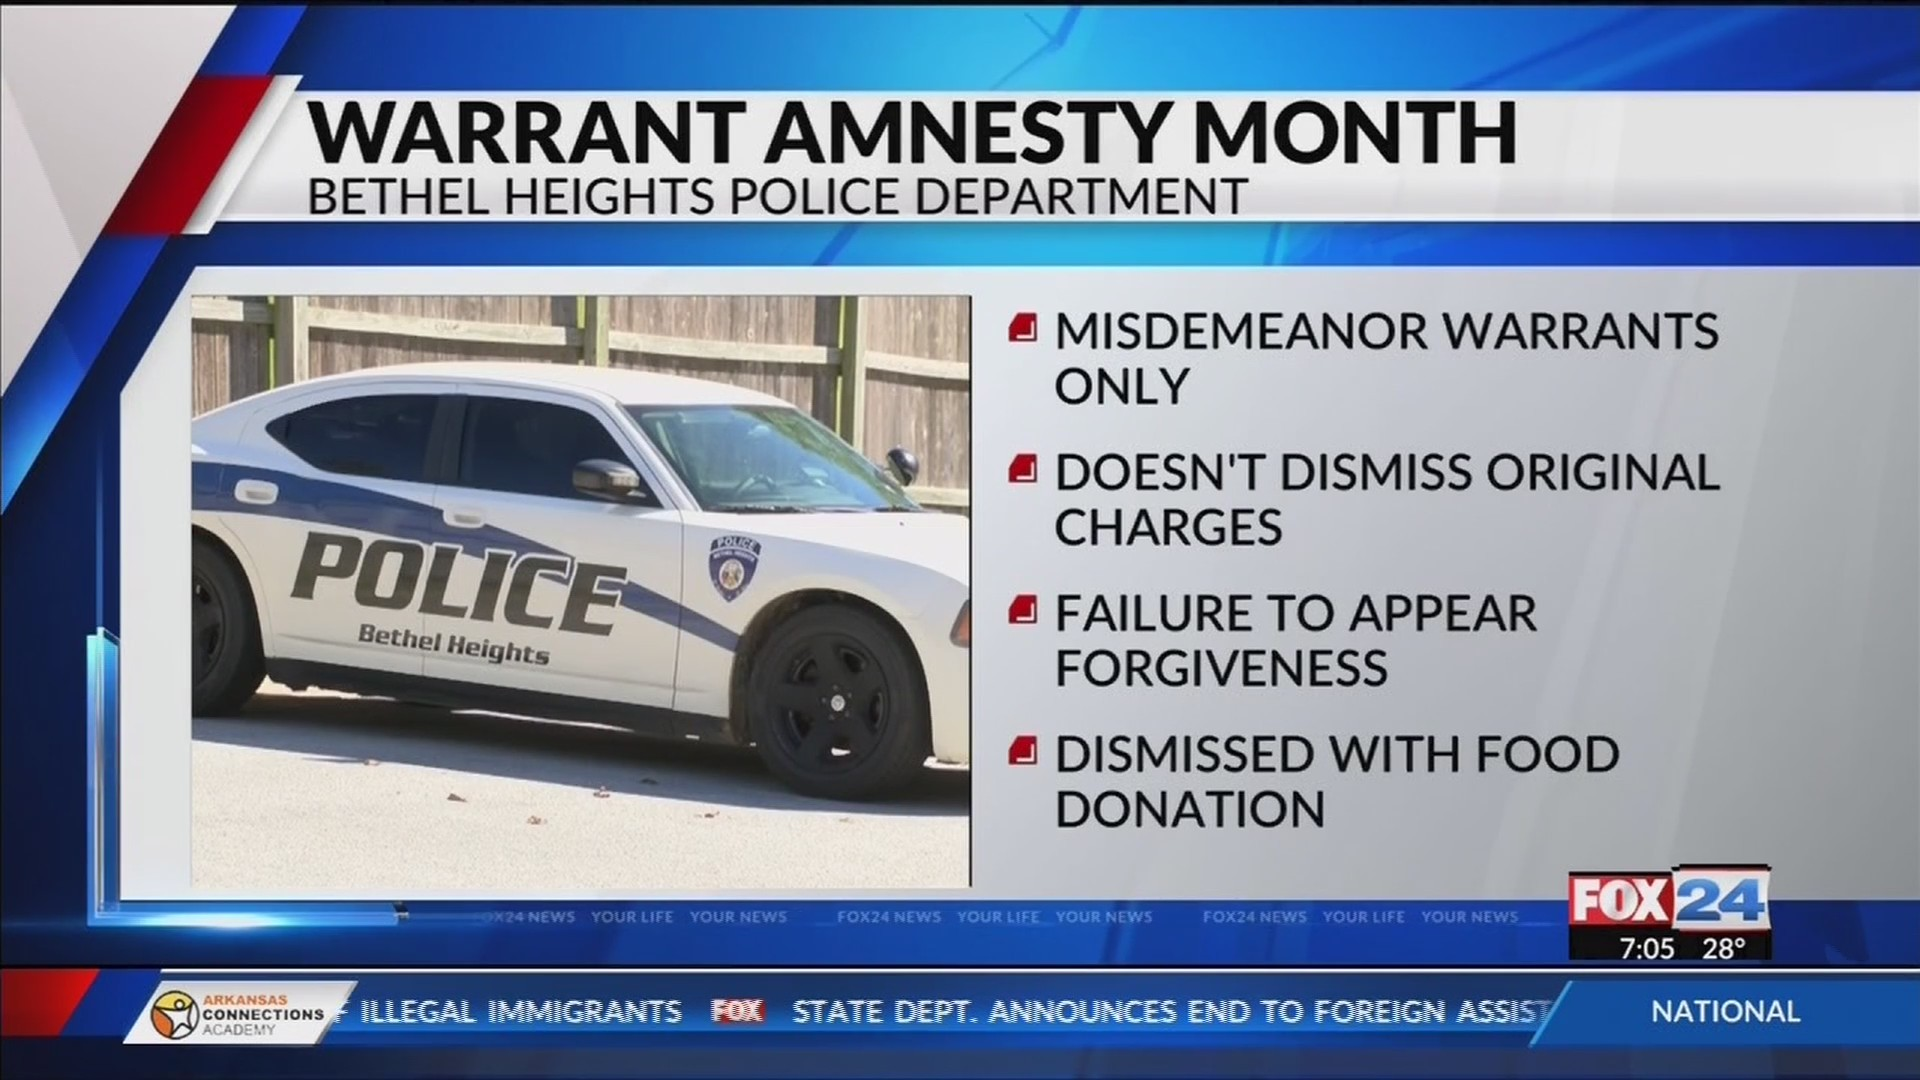 Bethel_Heights_Police_Offer_Warrant_Amne_0_20190401125808